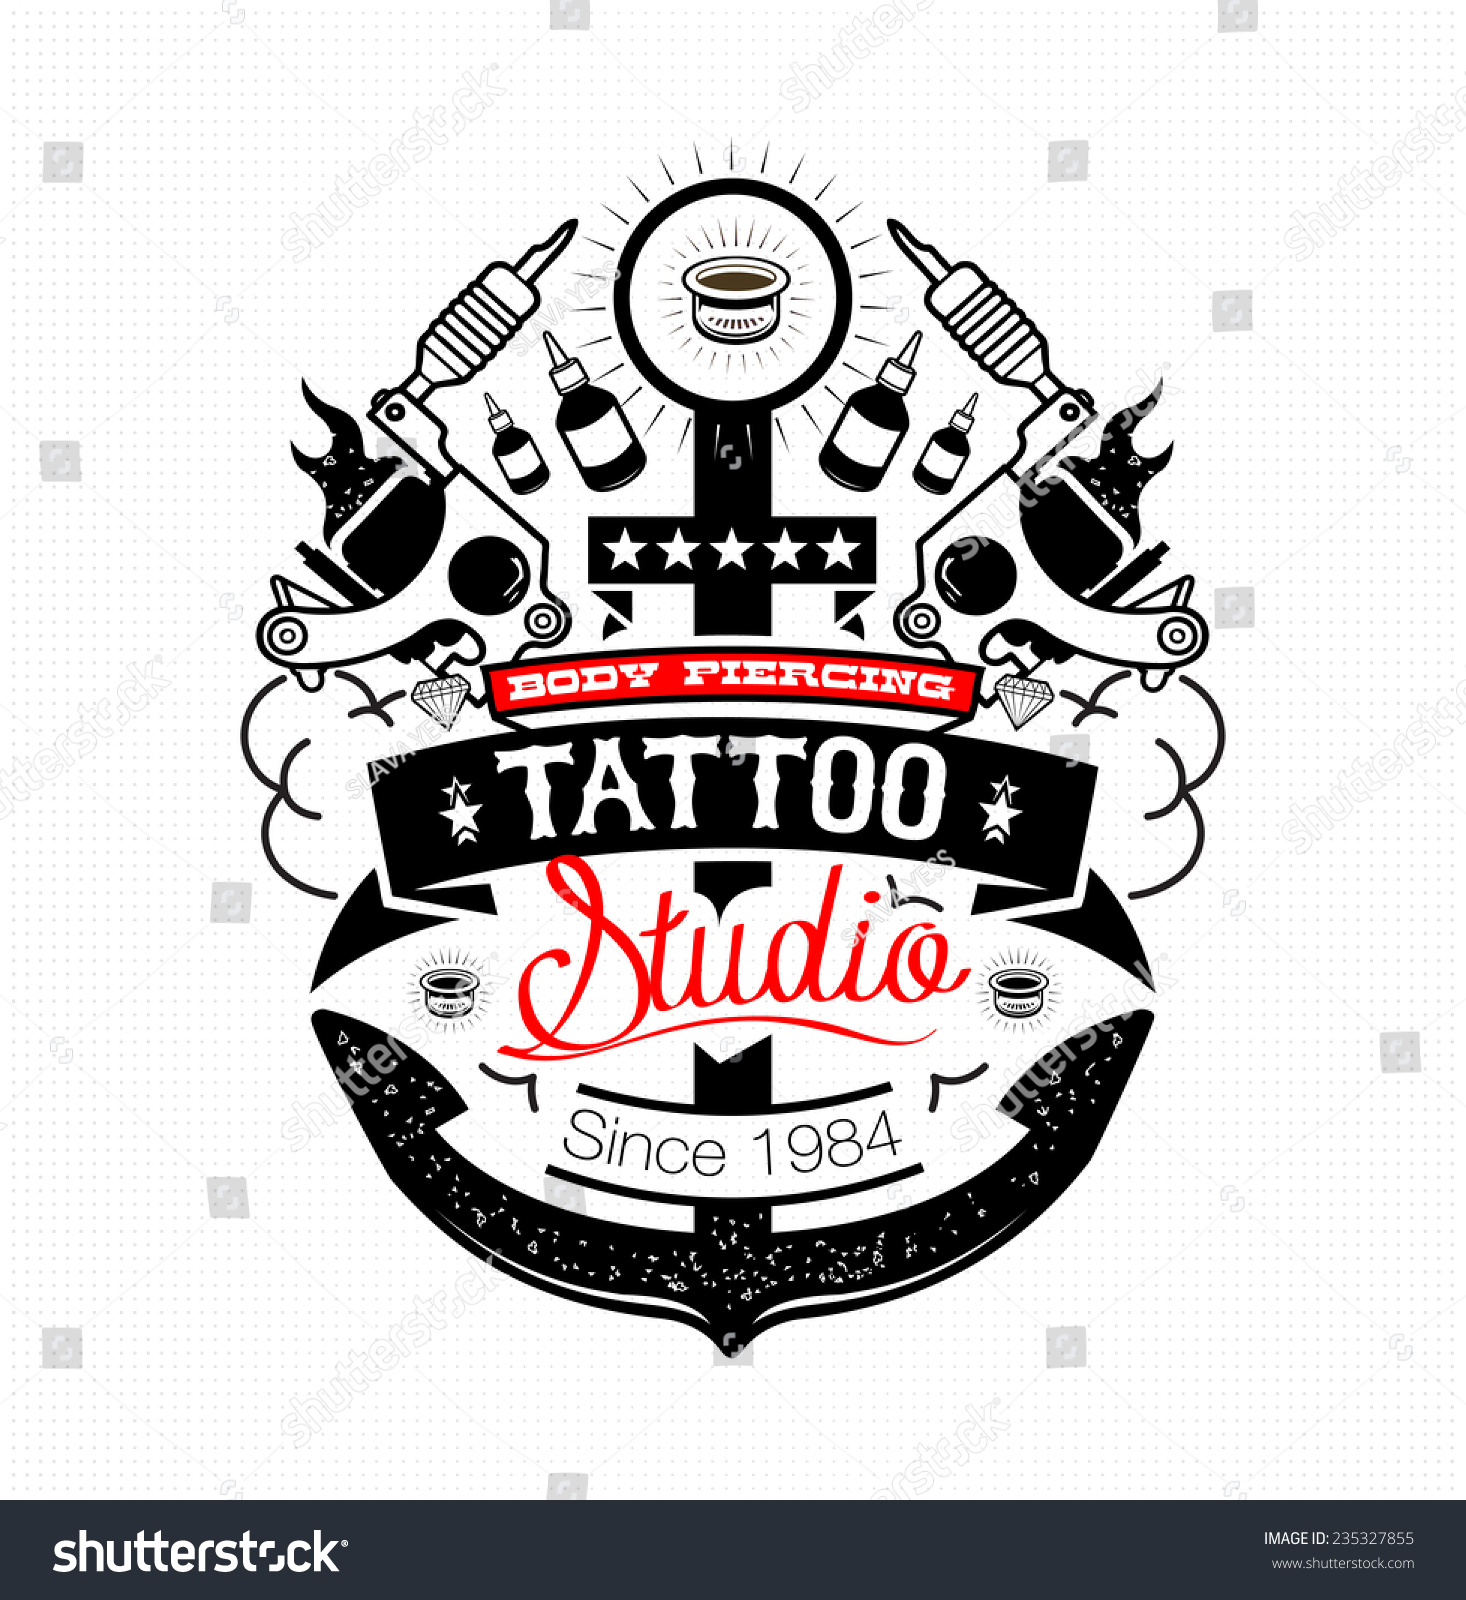 Since Studio Tattoo Body Piercing: Body Piercing Tattoo Studio Emblem Stock Vector 235327855